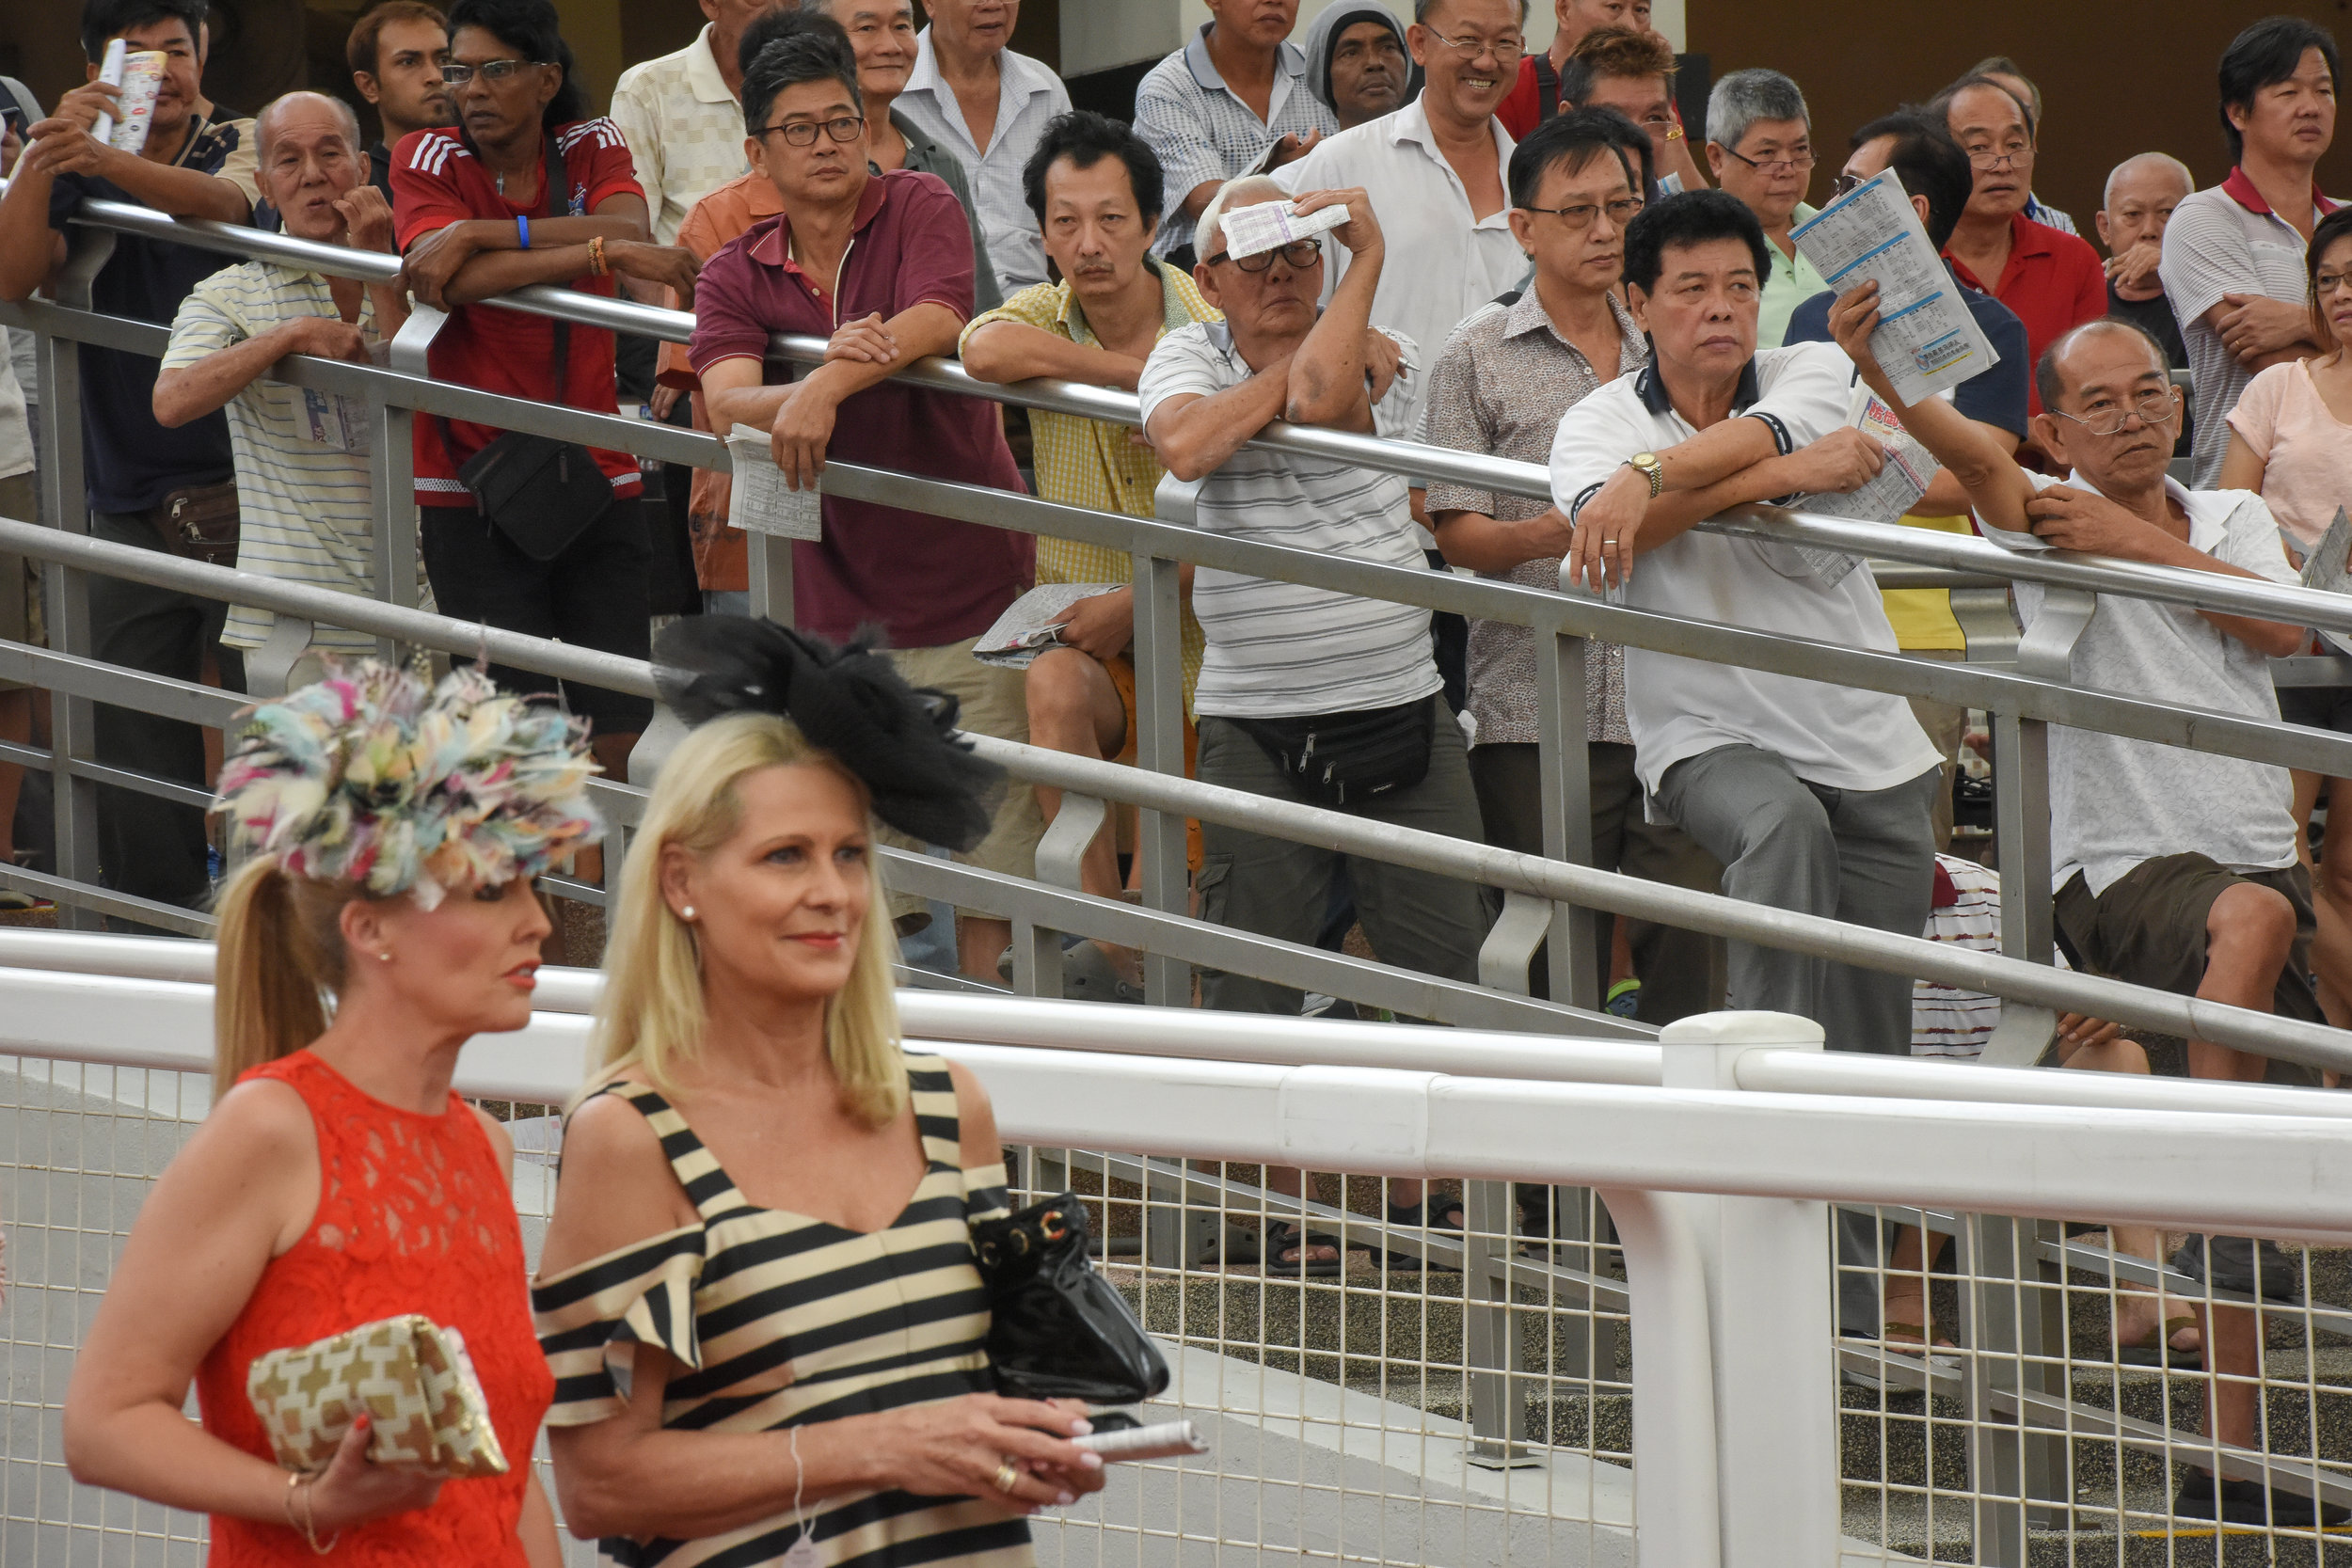 The Emirates Singapore Derby draws people from all walks of life - from glamorous women in summery frocks and feathered hats to slipper-clad punters clutching their betting guides. Spectators often look at the horses in the parade ring before placing their bets.